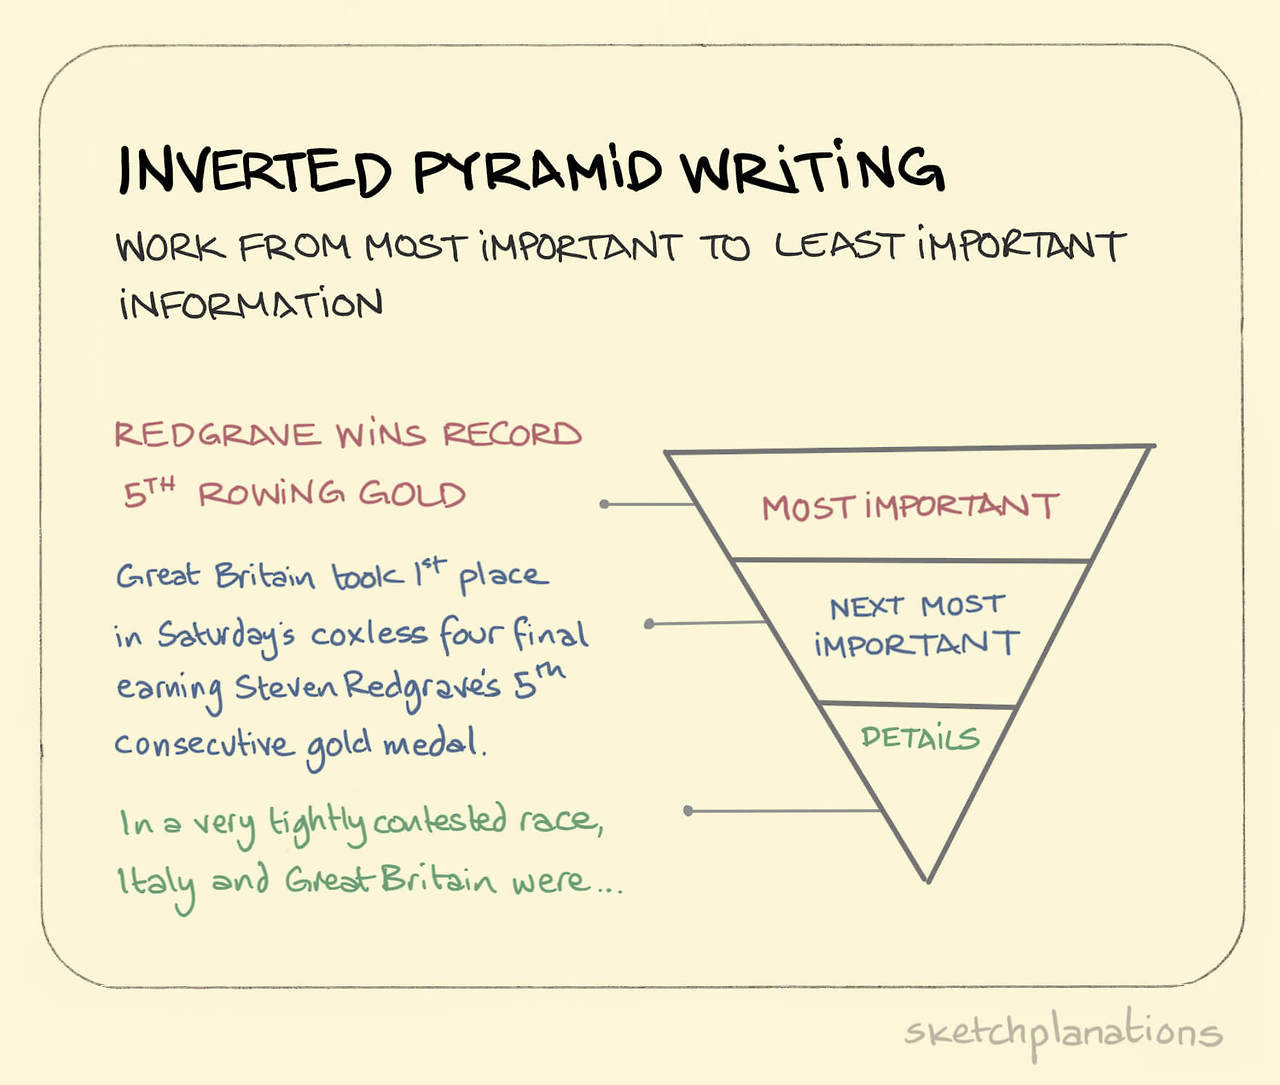 Inverted Pyramid Writing A Handy Journalist Sketchplanations